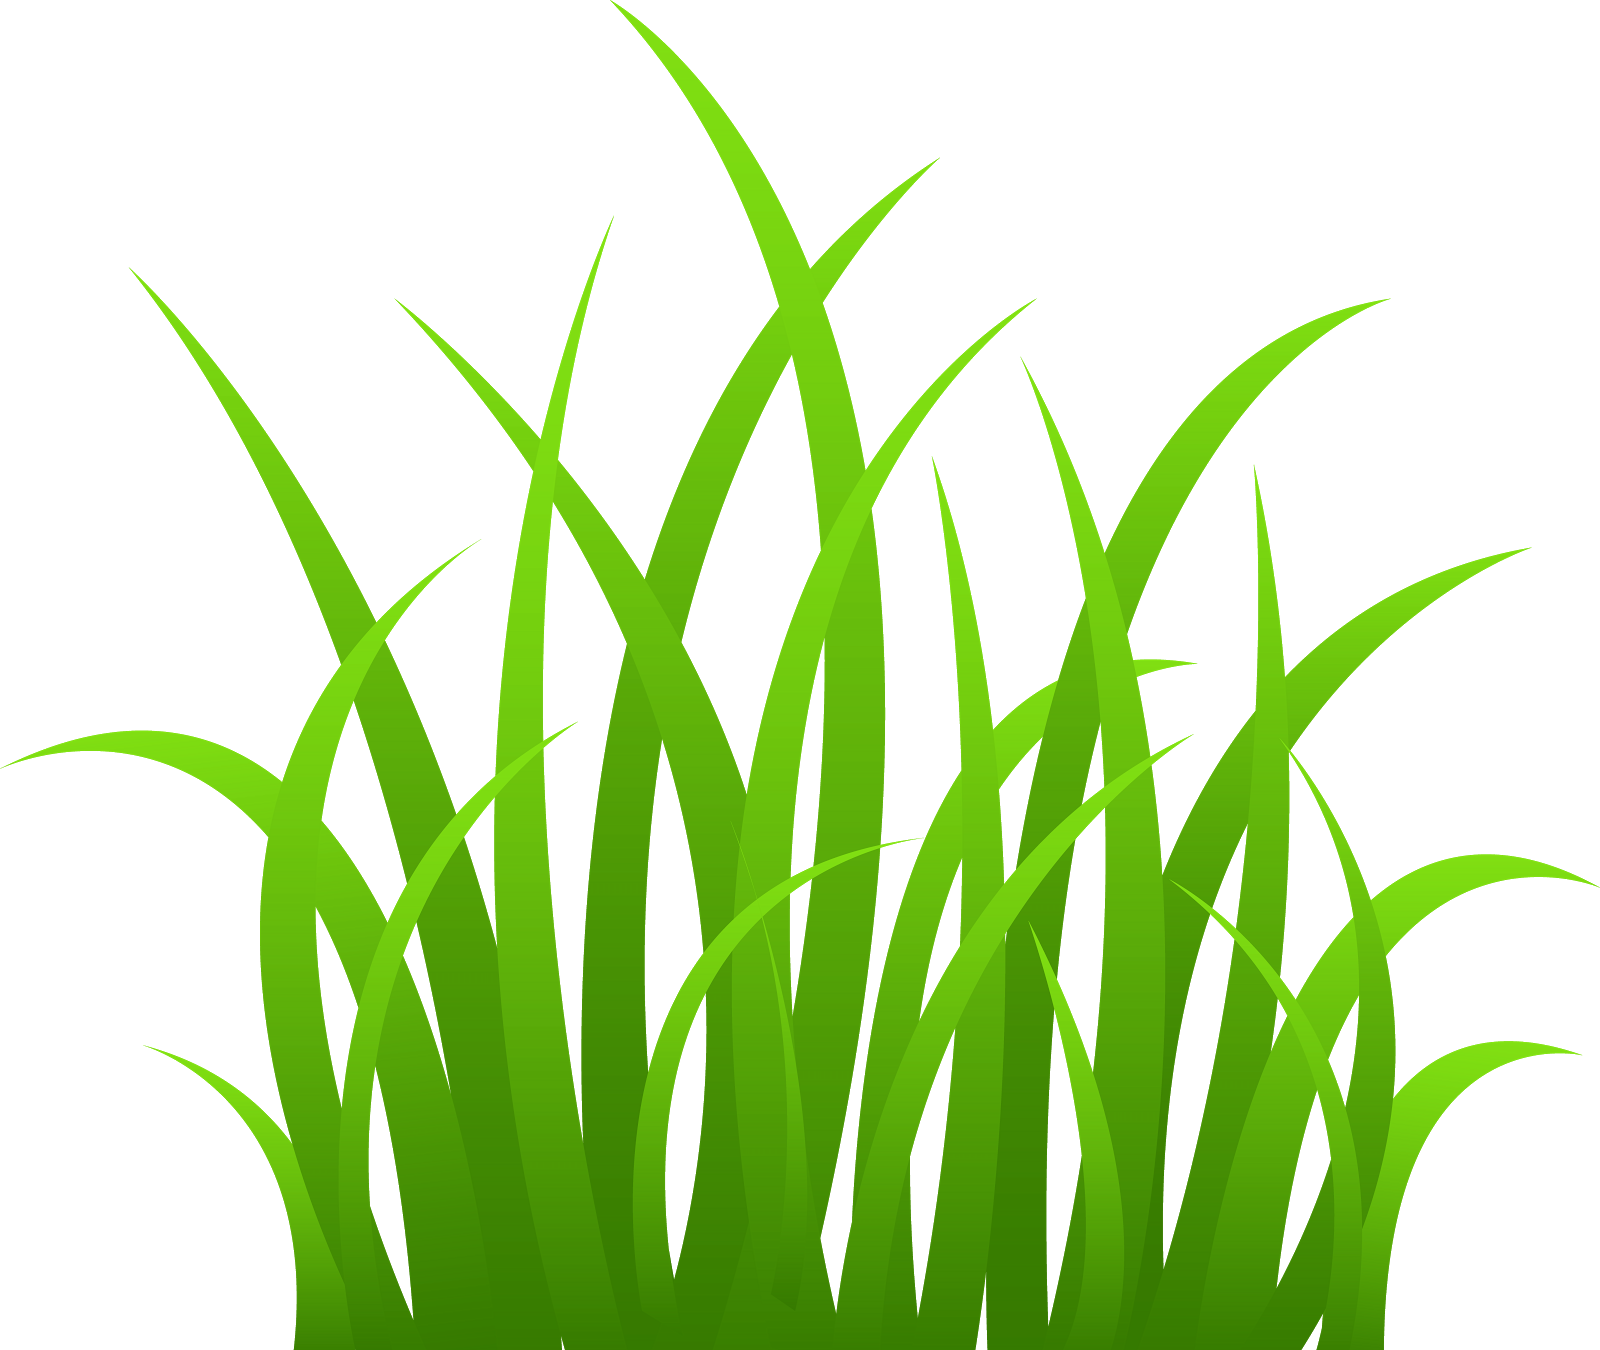 Grass clipart #17, Download drawings